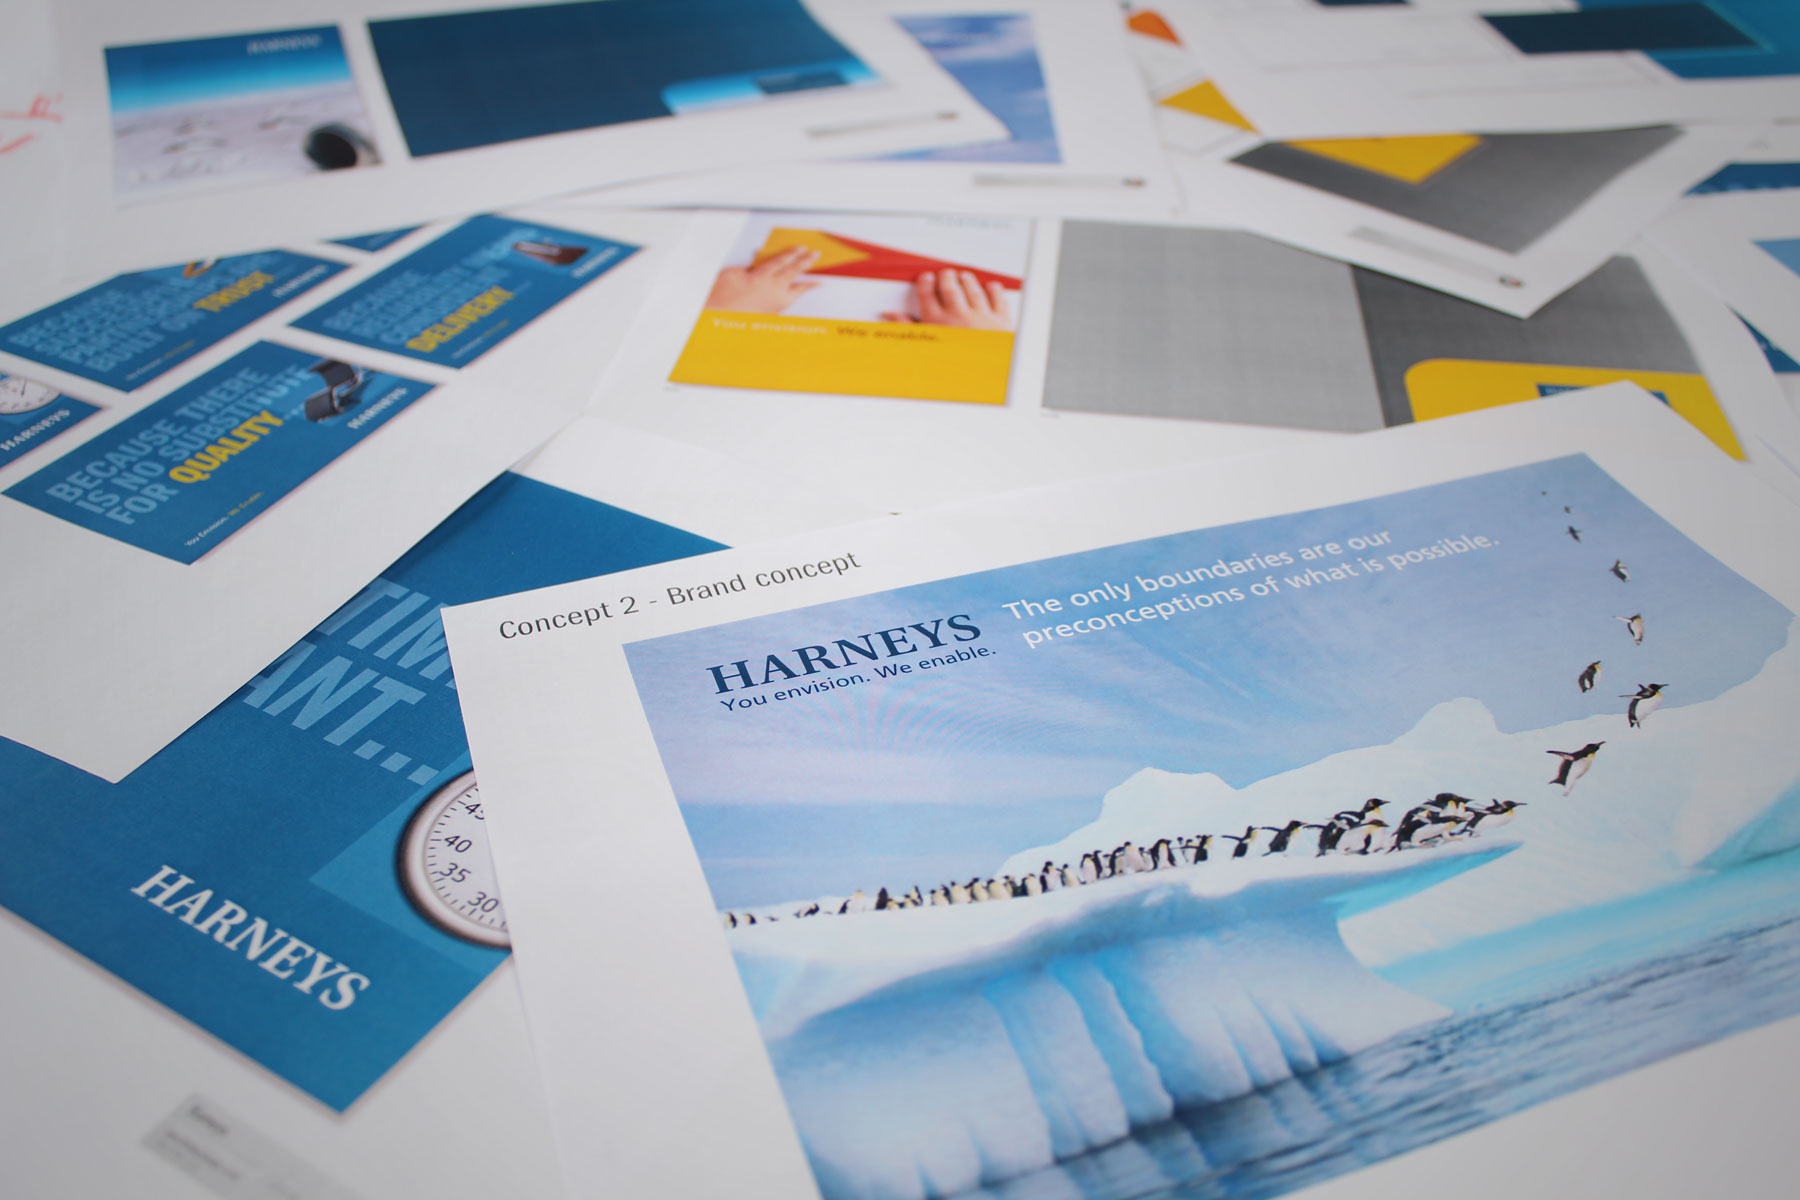 When we first engaged with Harneys, we were immediately excited about the extent of their influence across the globe. Our strategic thinking explored ways of bringing this message to an even wider market.